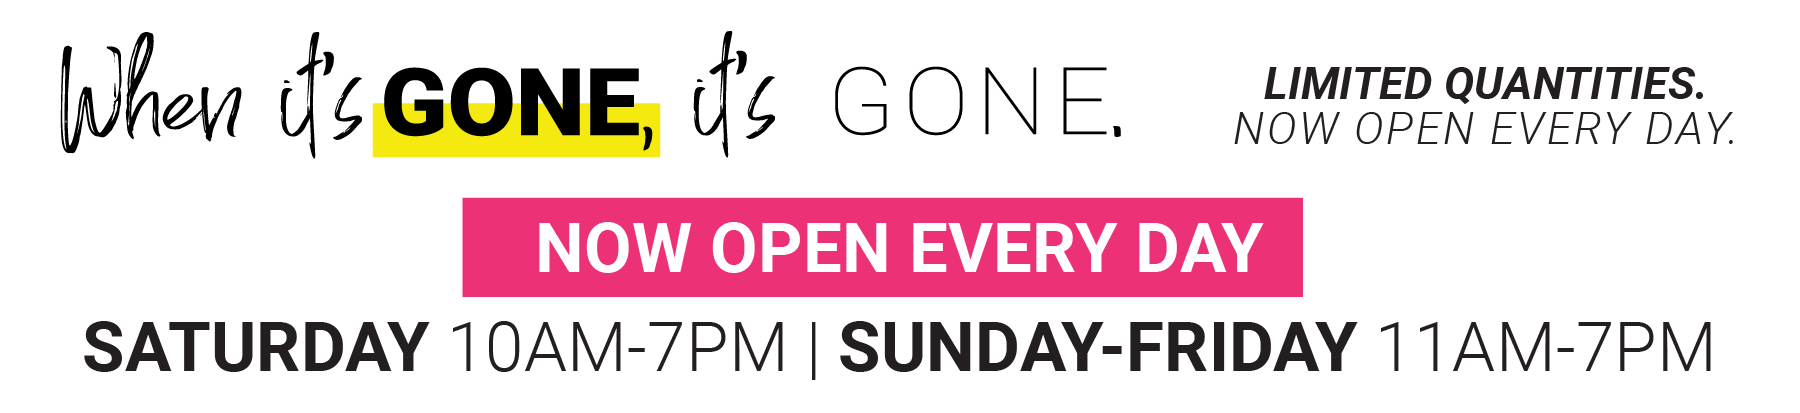 When it's gone its Gone. limited Quantities Now Open Every Day